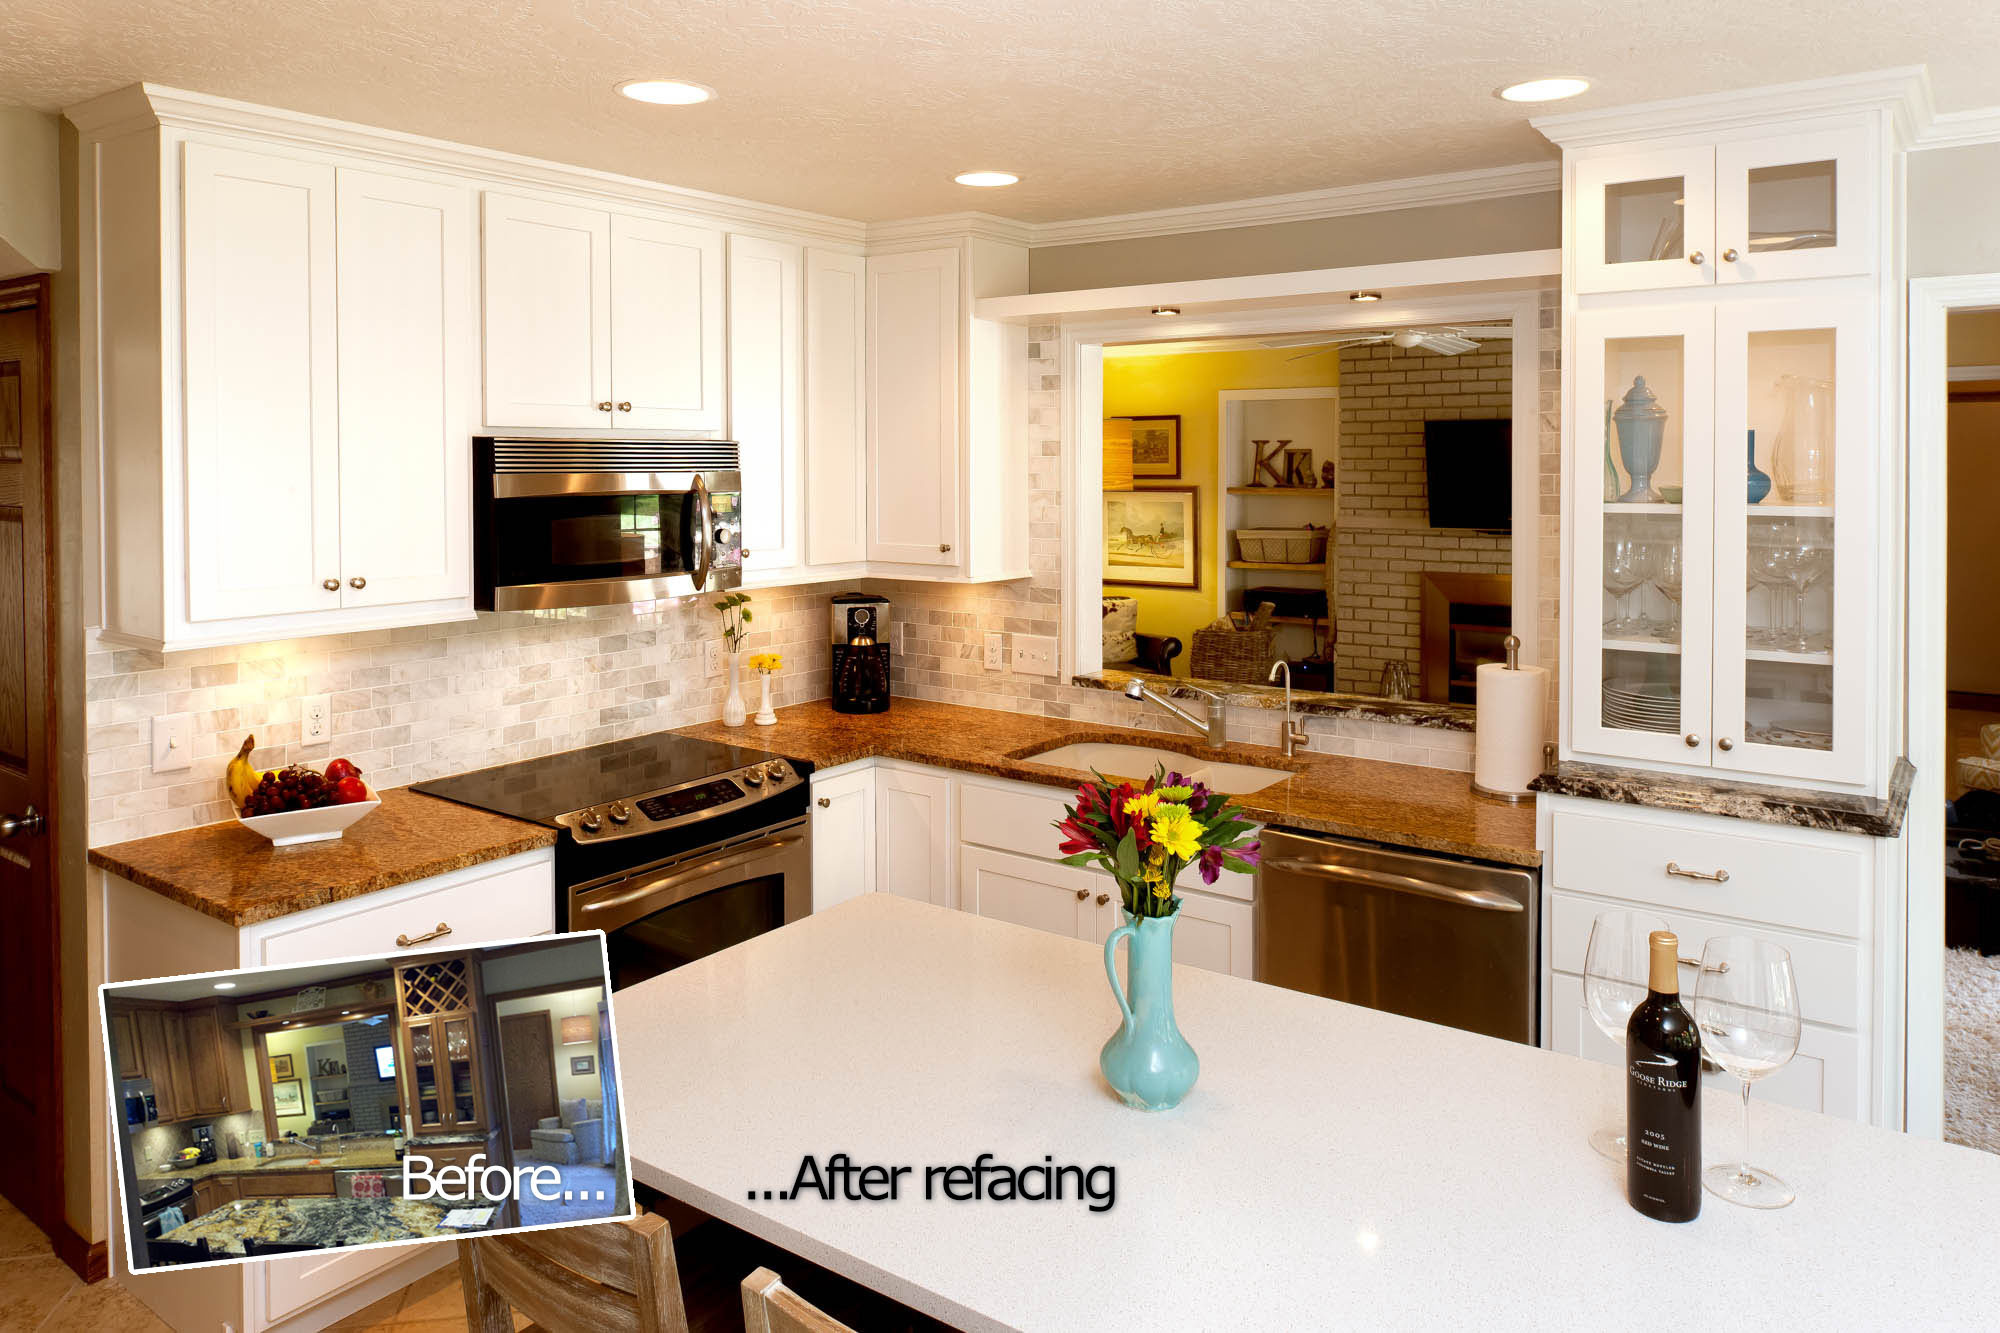 Renew Cabinet Refacing | Showplace Cabinetry